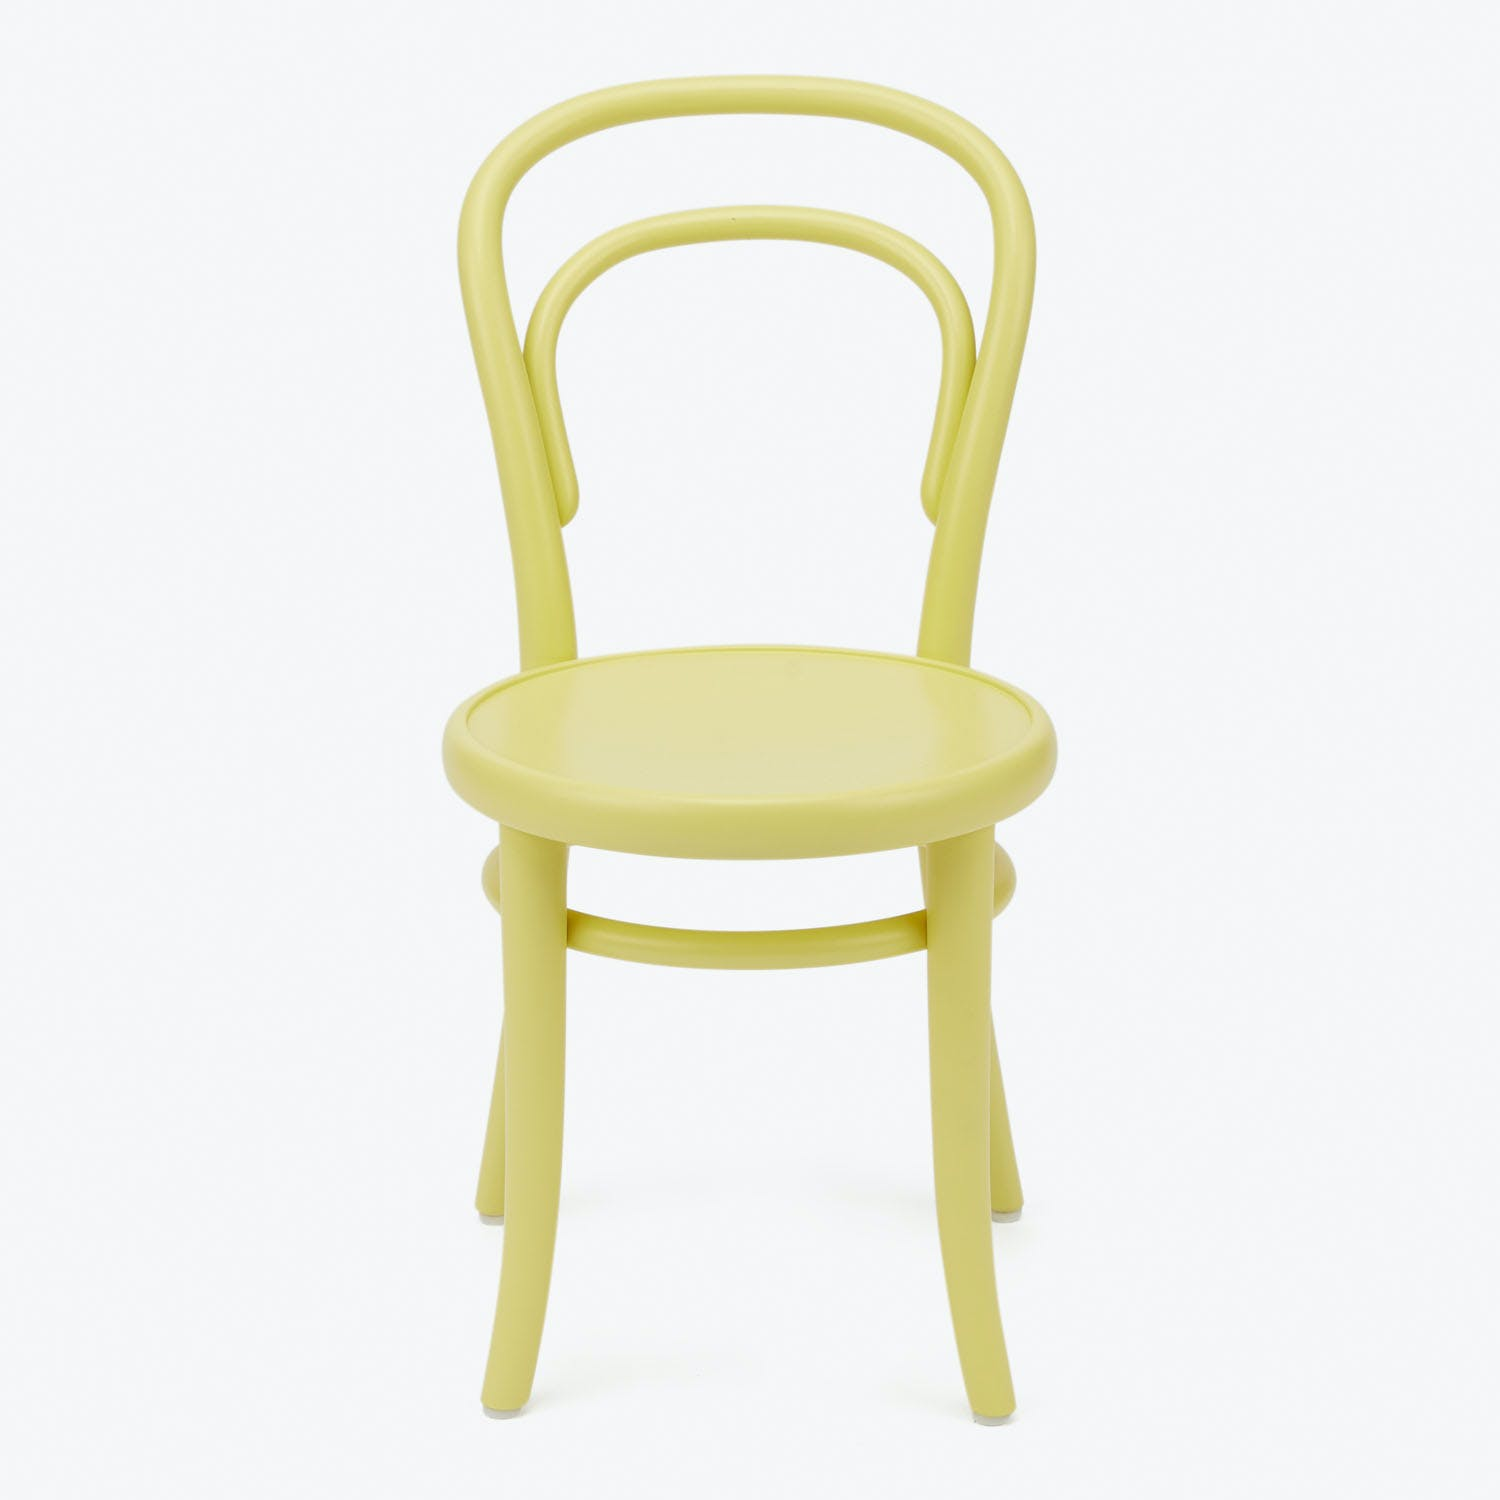 Product Image - Bent Petite Chair Creamy Yellow